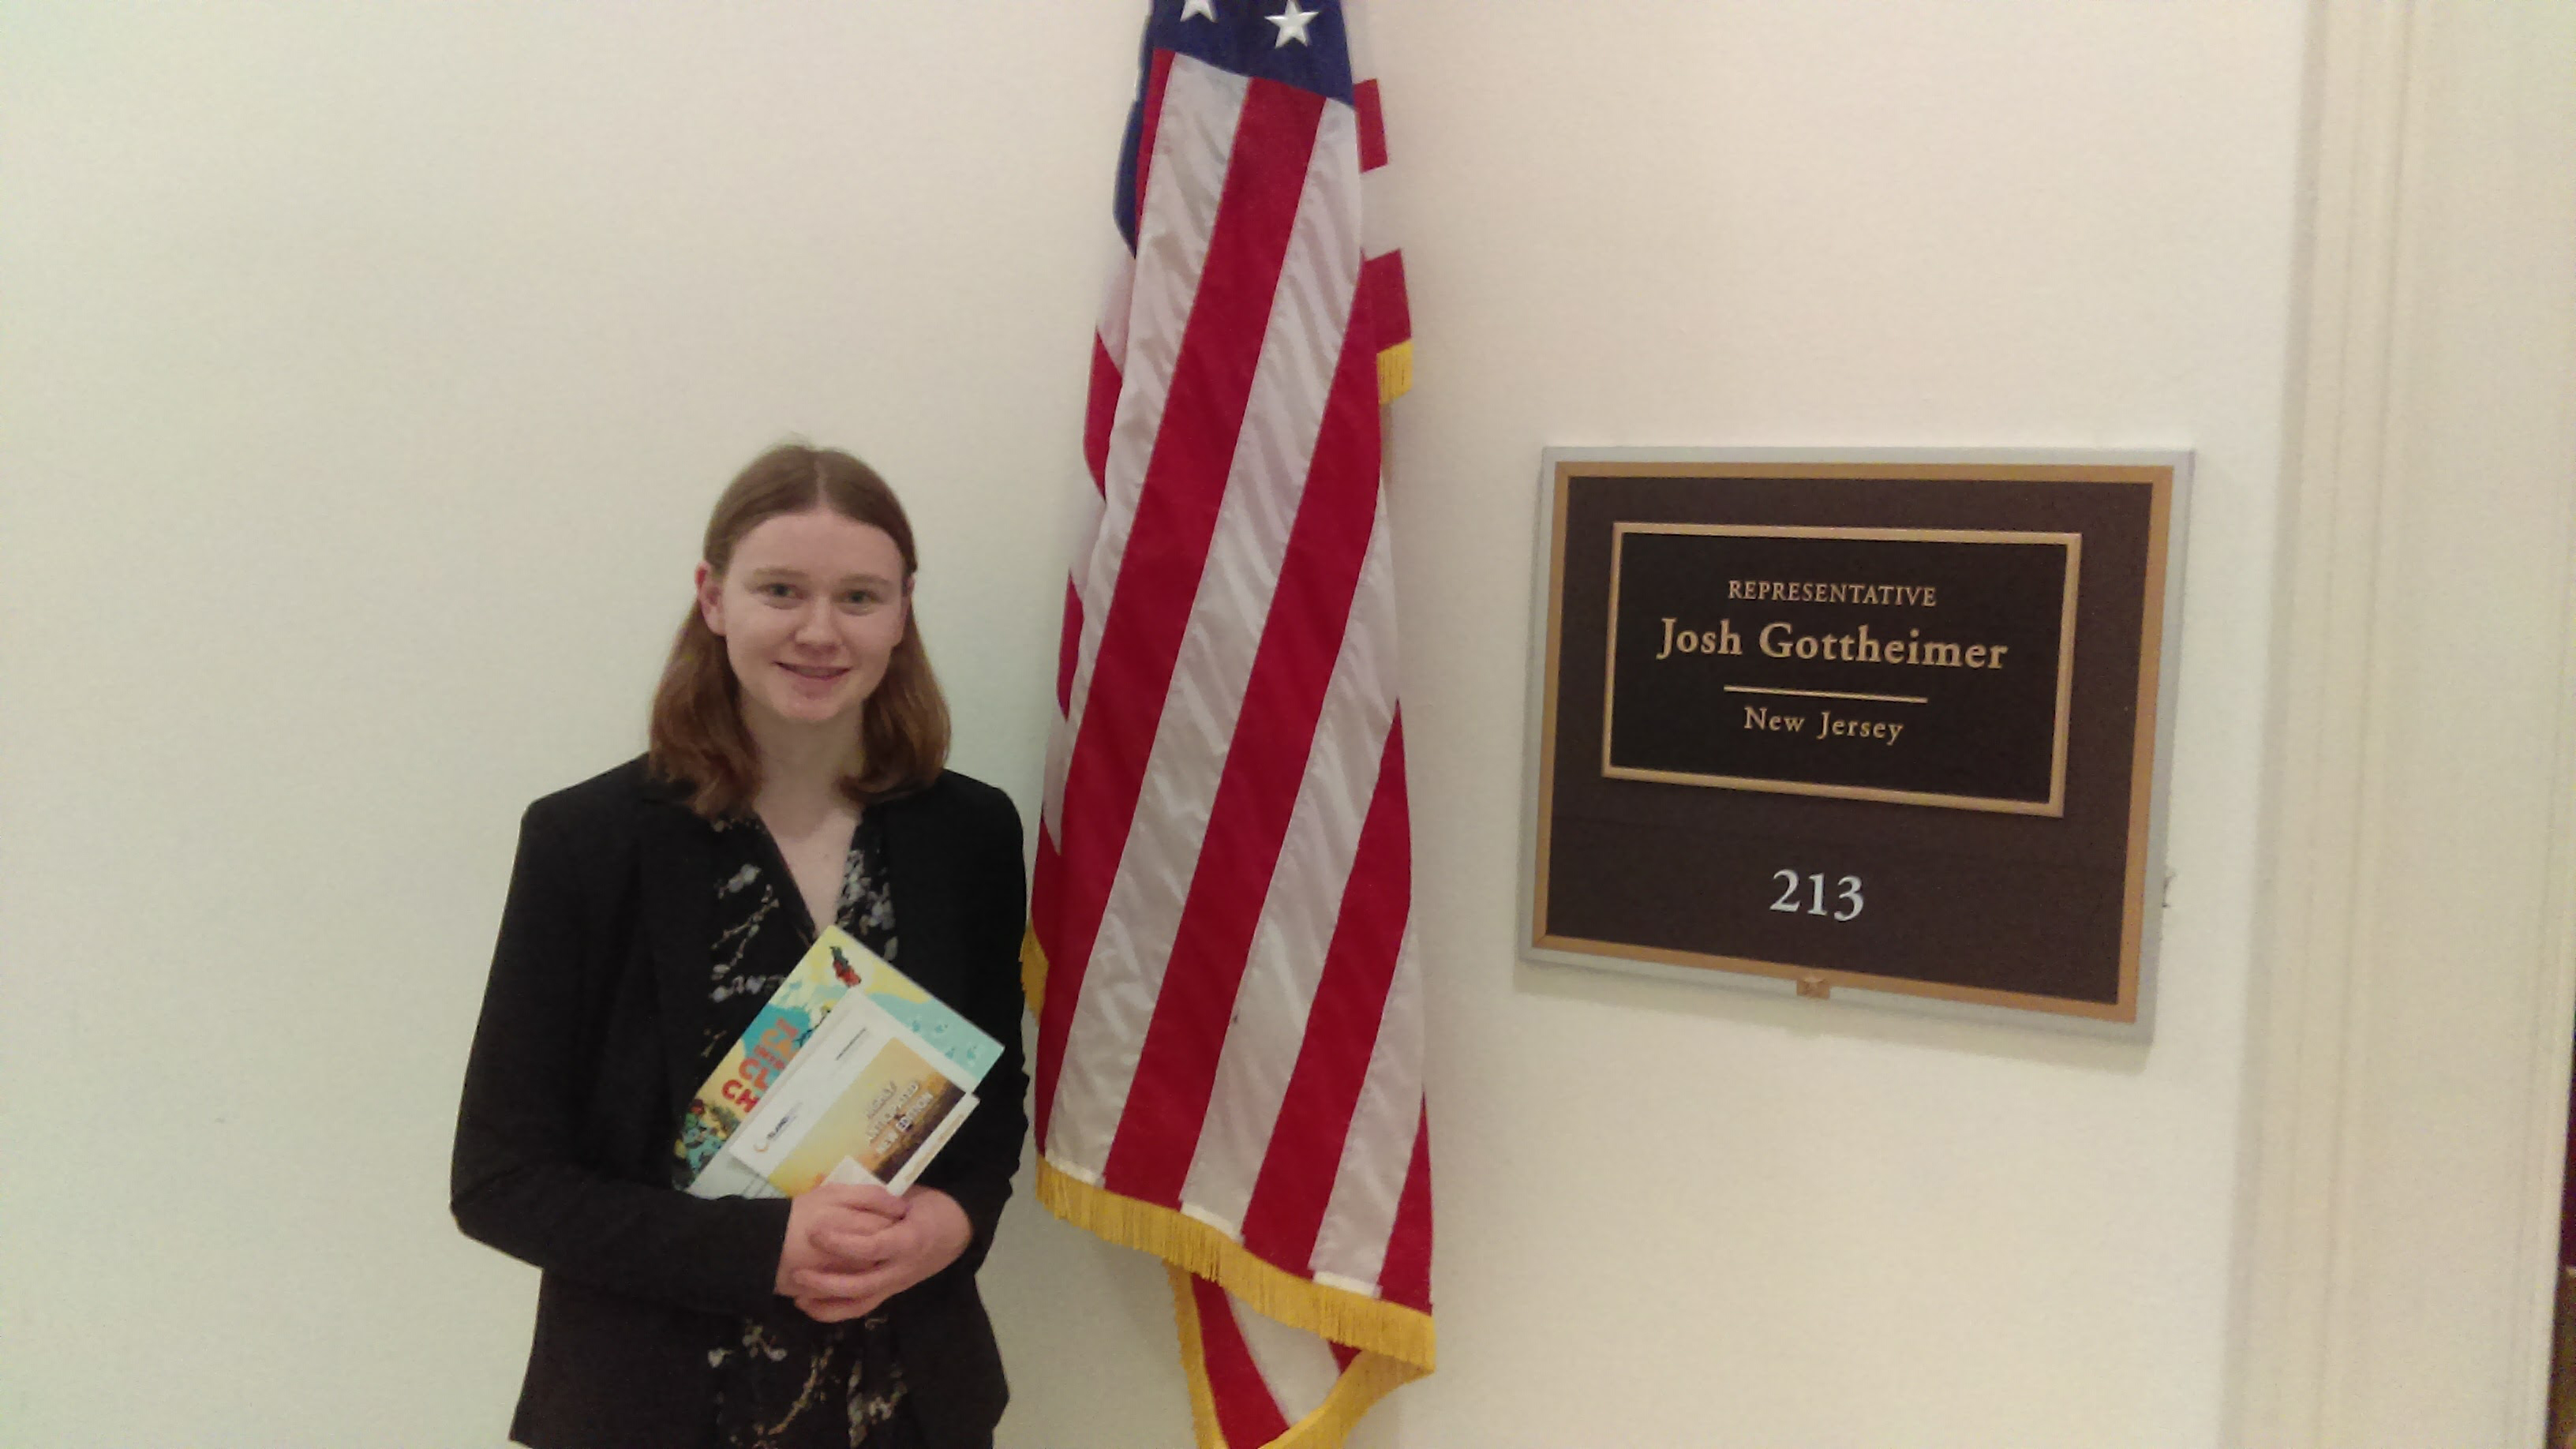 Isabella Austin at Rep. Gottheimer's office | Island Press